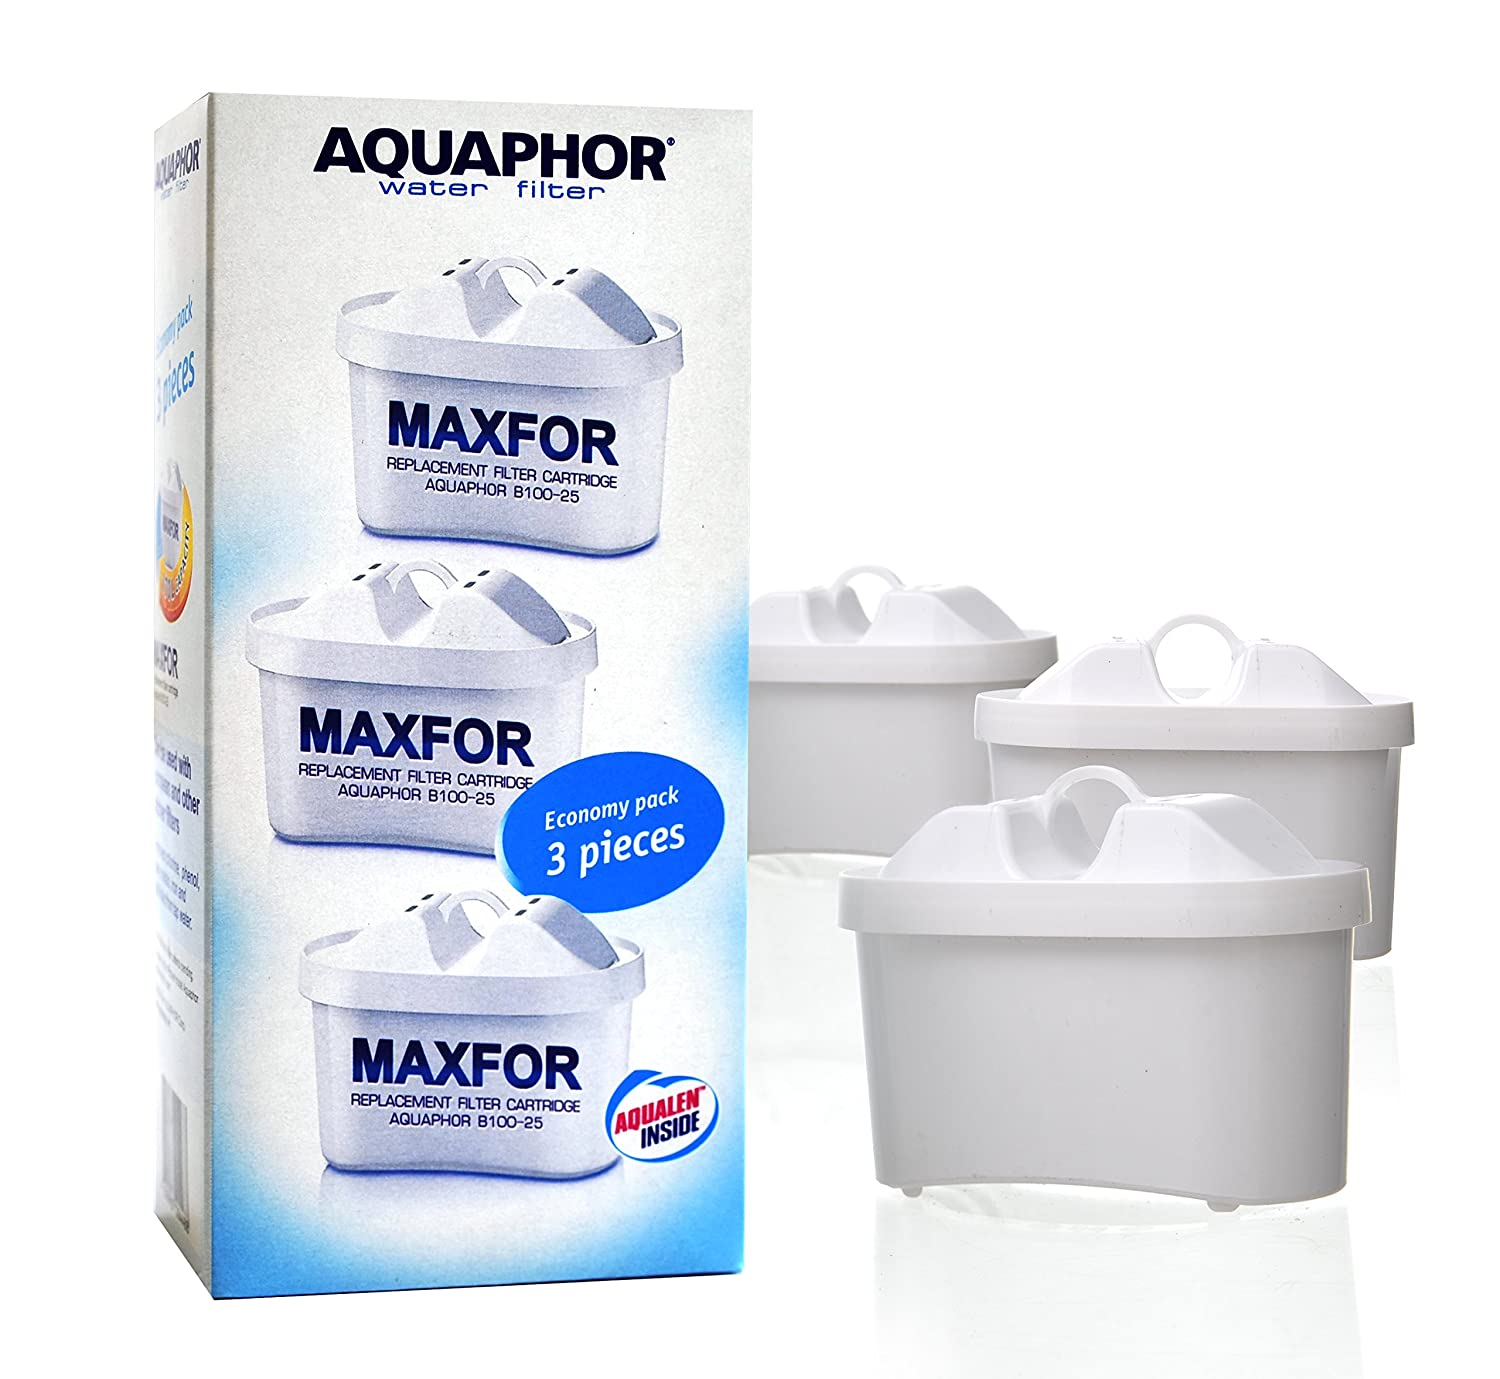 Aquaphor MAXFOR B100-25 Replacement Cartridges for Jug Water Filters - Pack of 3, Universal, 200 Litres Capacity